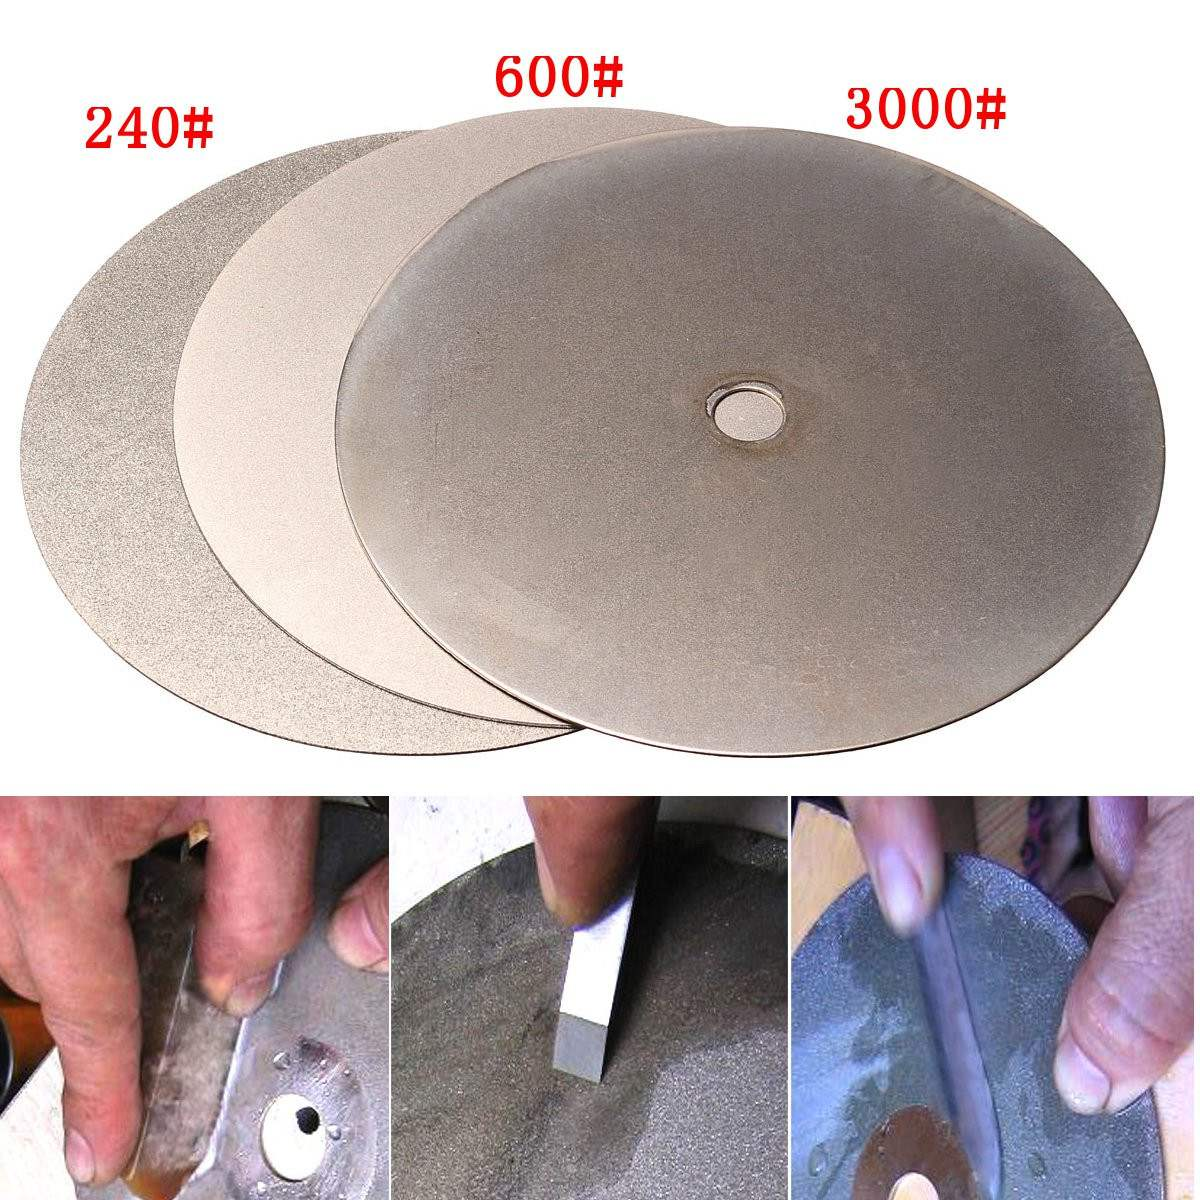 3Pcs 6 Inch 150mm Diamond Grinding Wheel Grit 240# 600# 3000# Flat Lap Disk Wheel Grinding Pad Tool Power Tool Accessories 3pcs 2 6 inch grit 240 600 1000 kit thin flat diamond stone sharpeners knife fine medium coarse